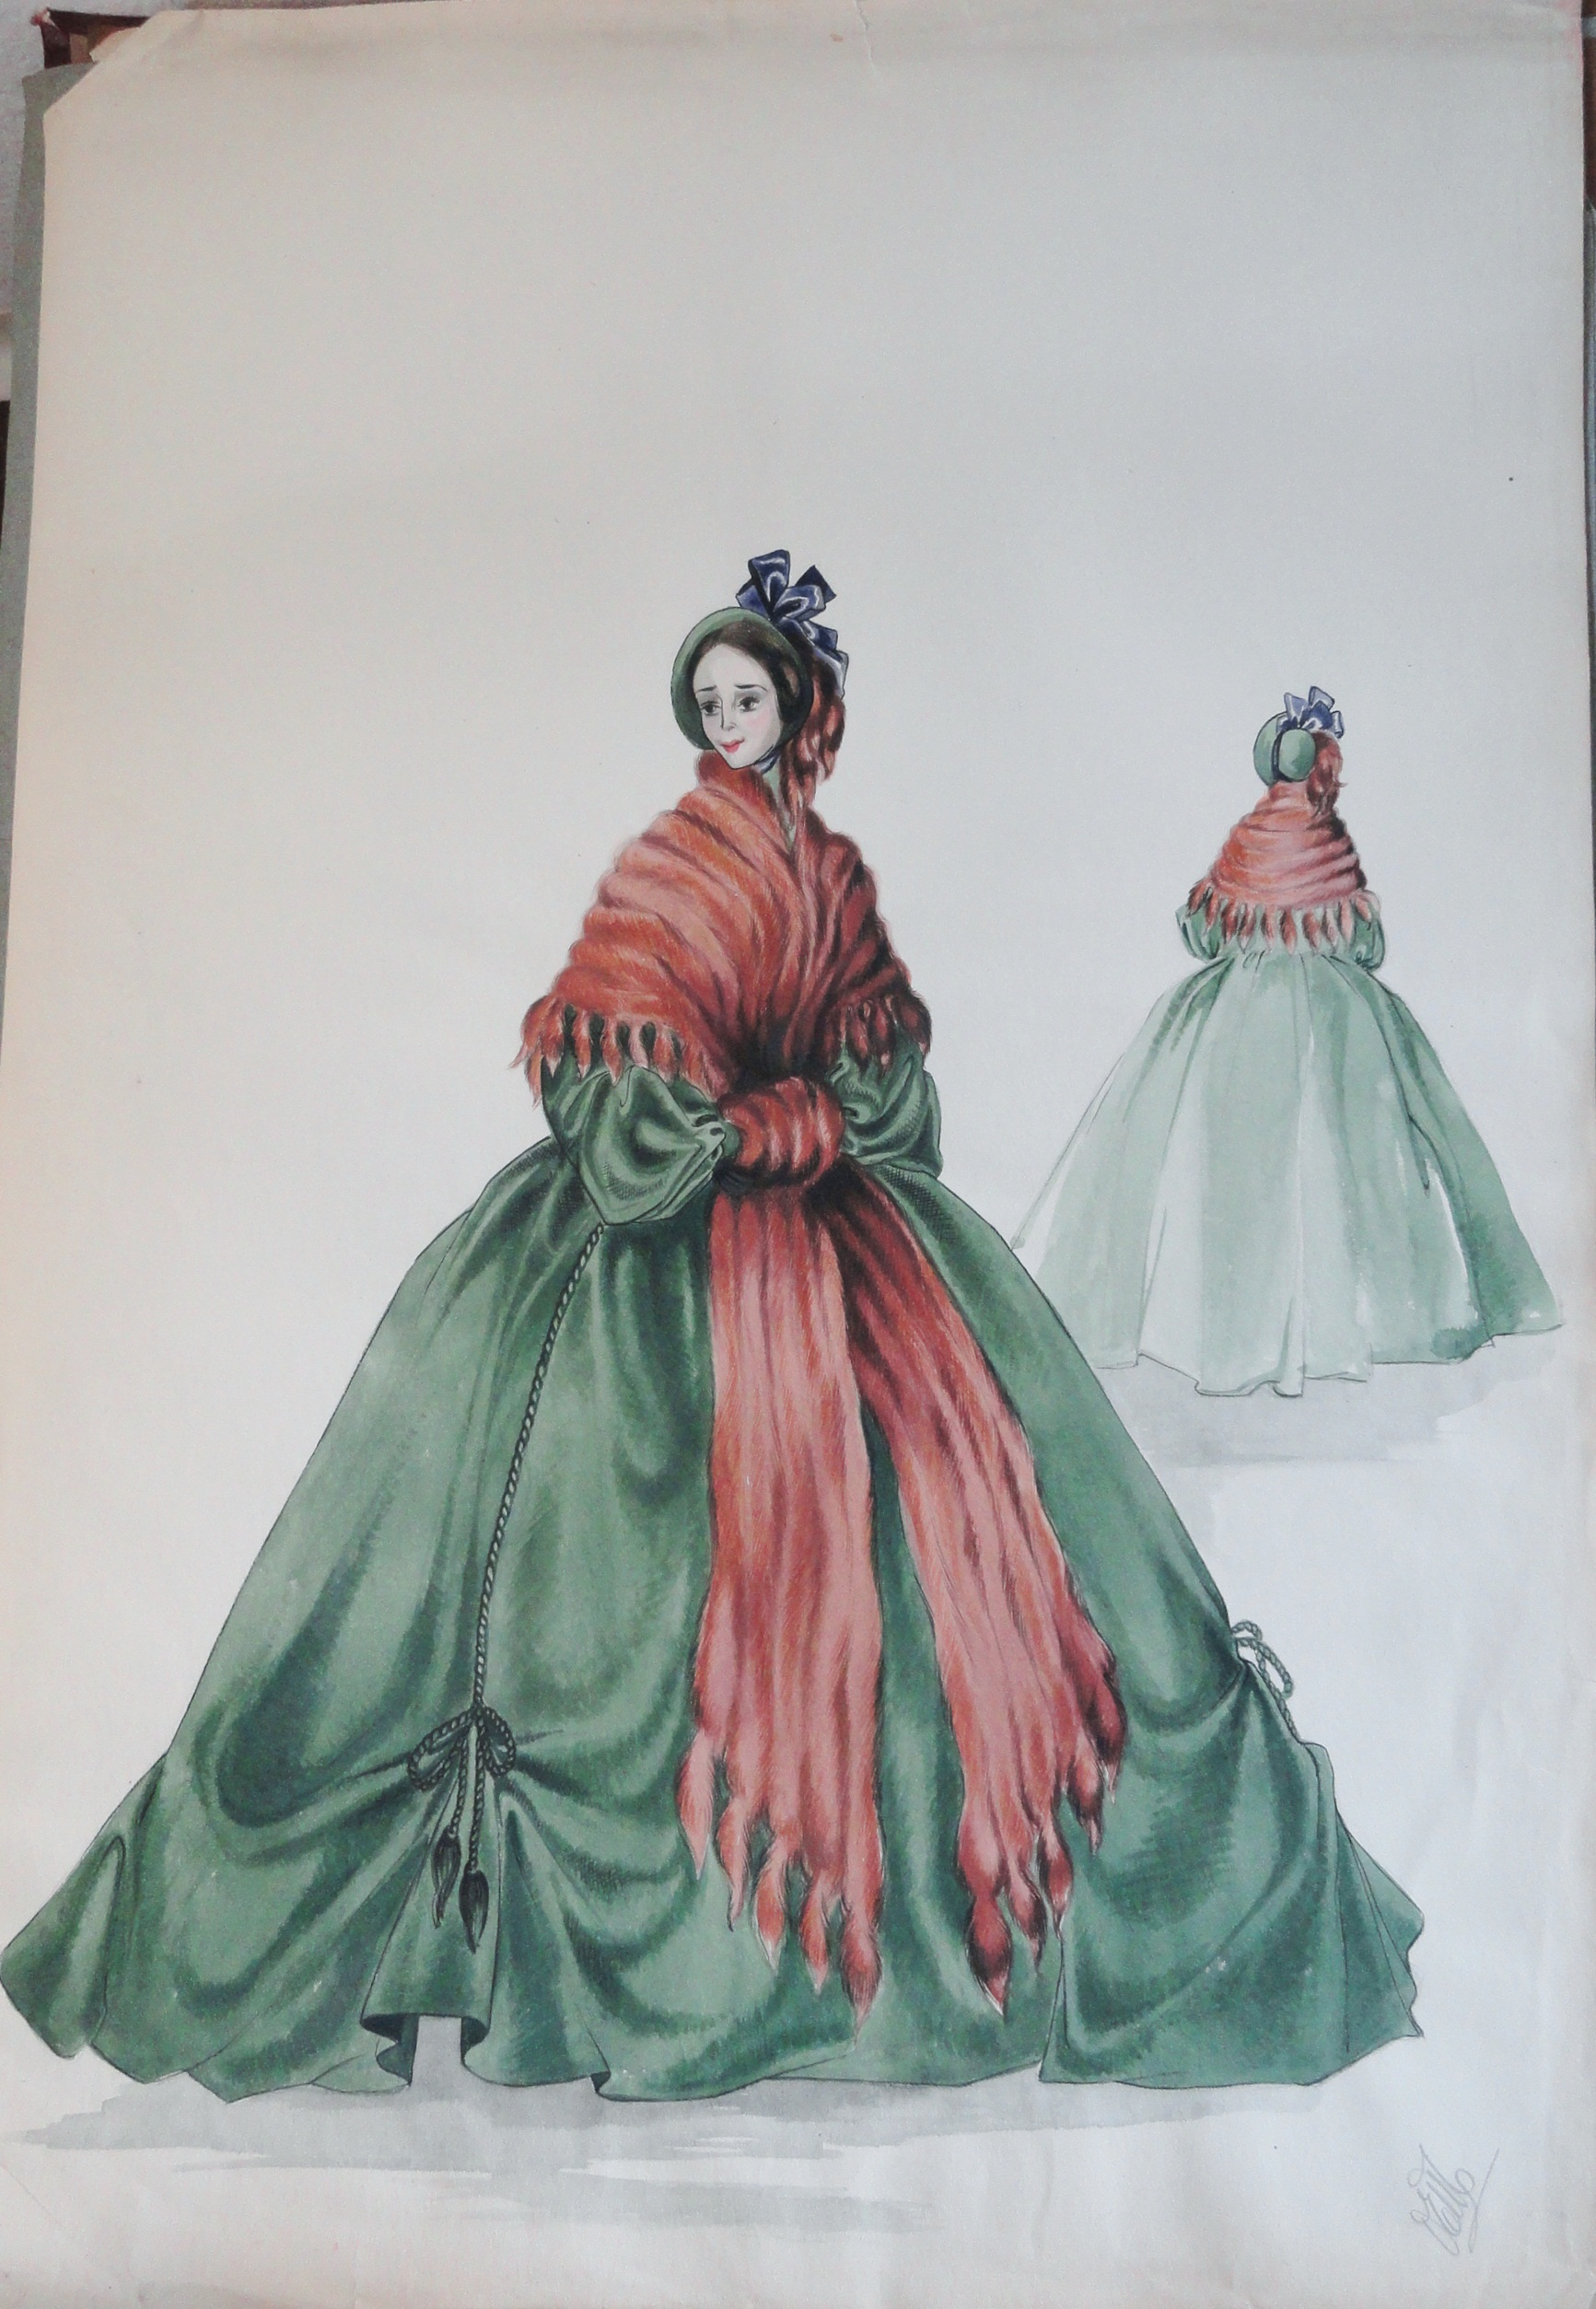 Rachel Felix in long green dress with fur stole. Pen and ink and gouache. Signed.  From the Rachel Portfolio by Owen Hyde Clark. $400.00.